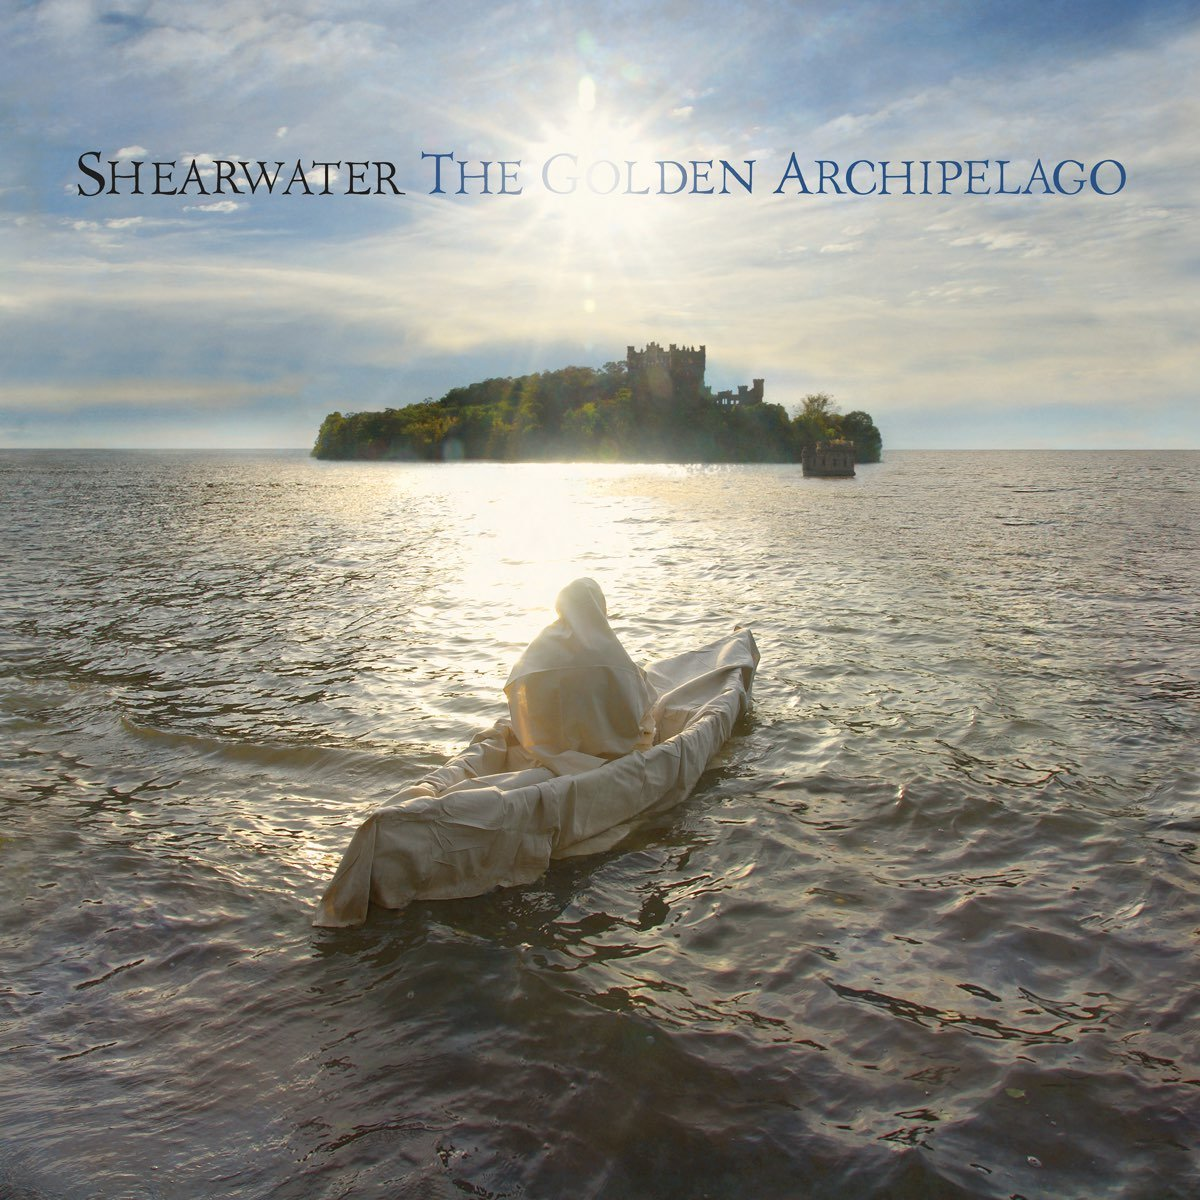 Shearwater, The Golden Archipelago